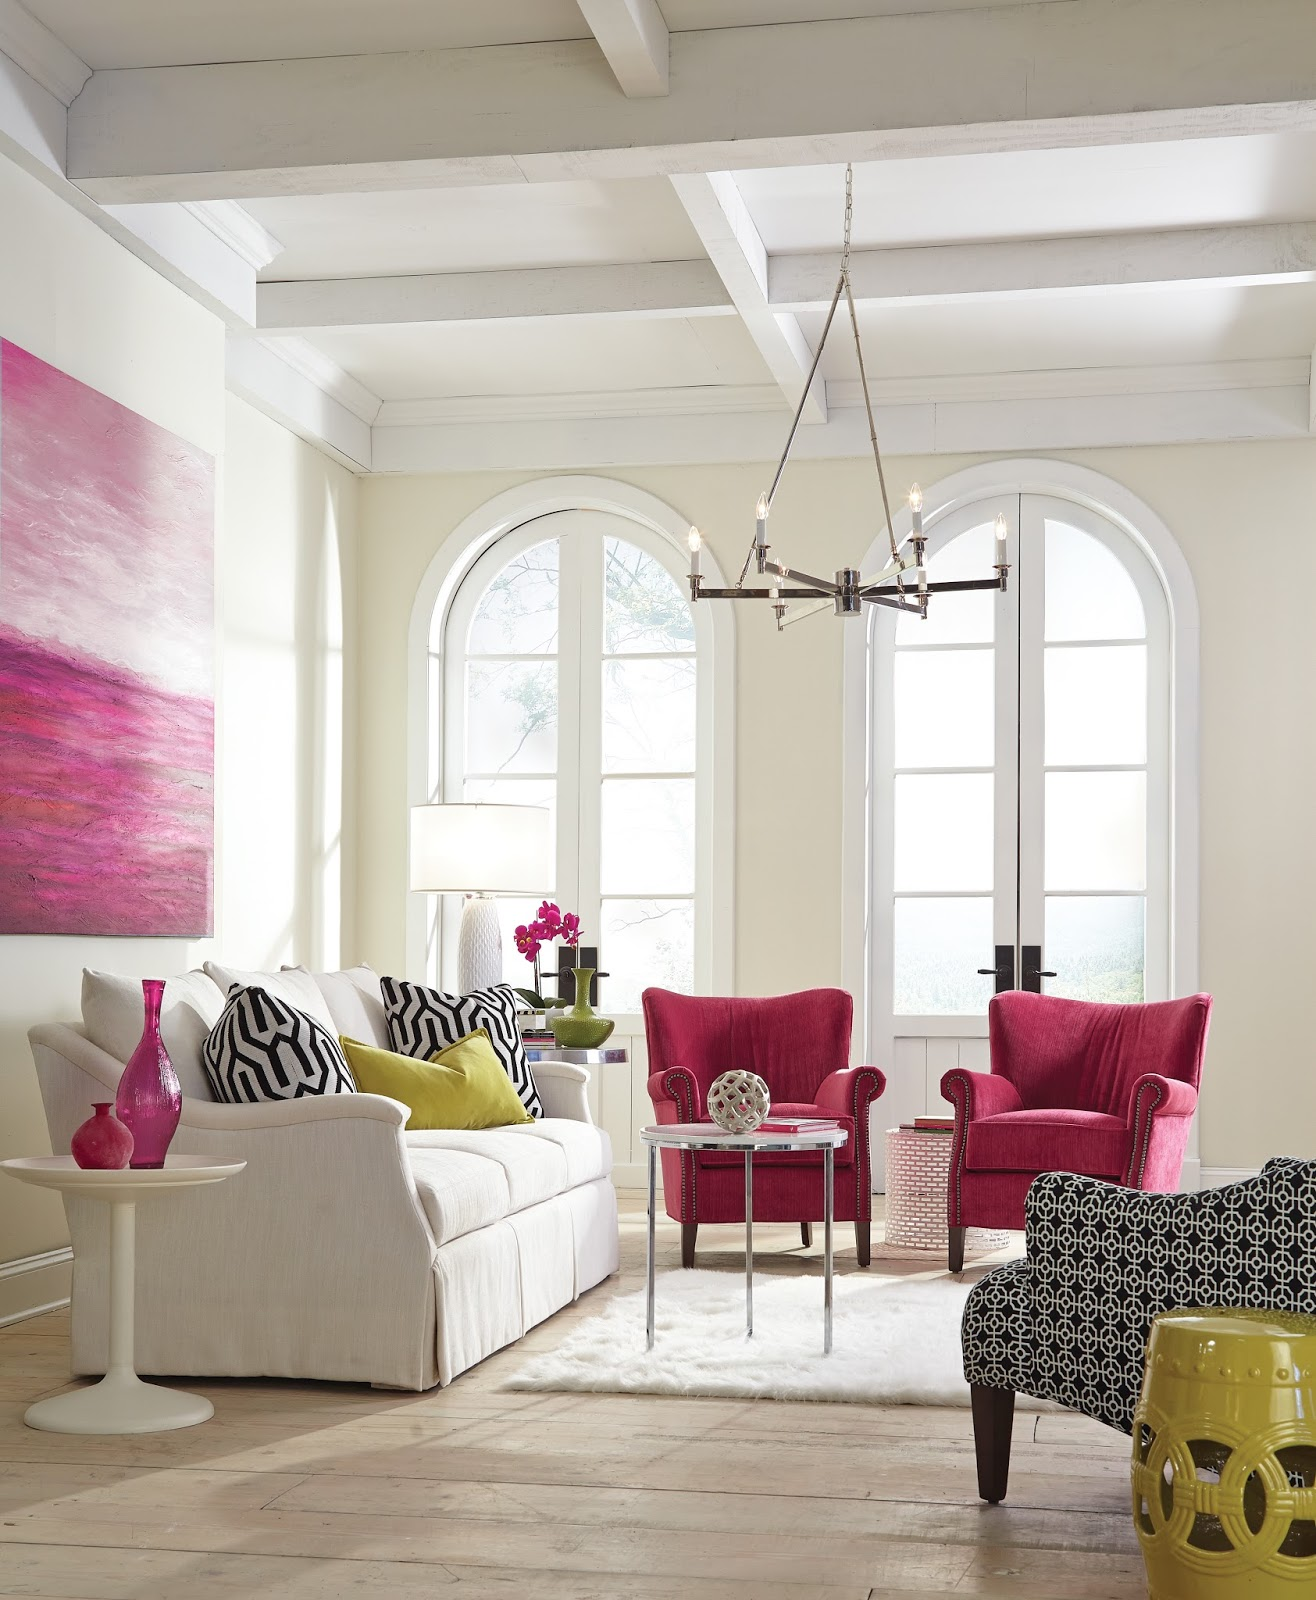 No Rooms Colorful Furniture: Big Burst Of Color At High Point Market